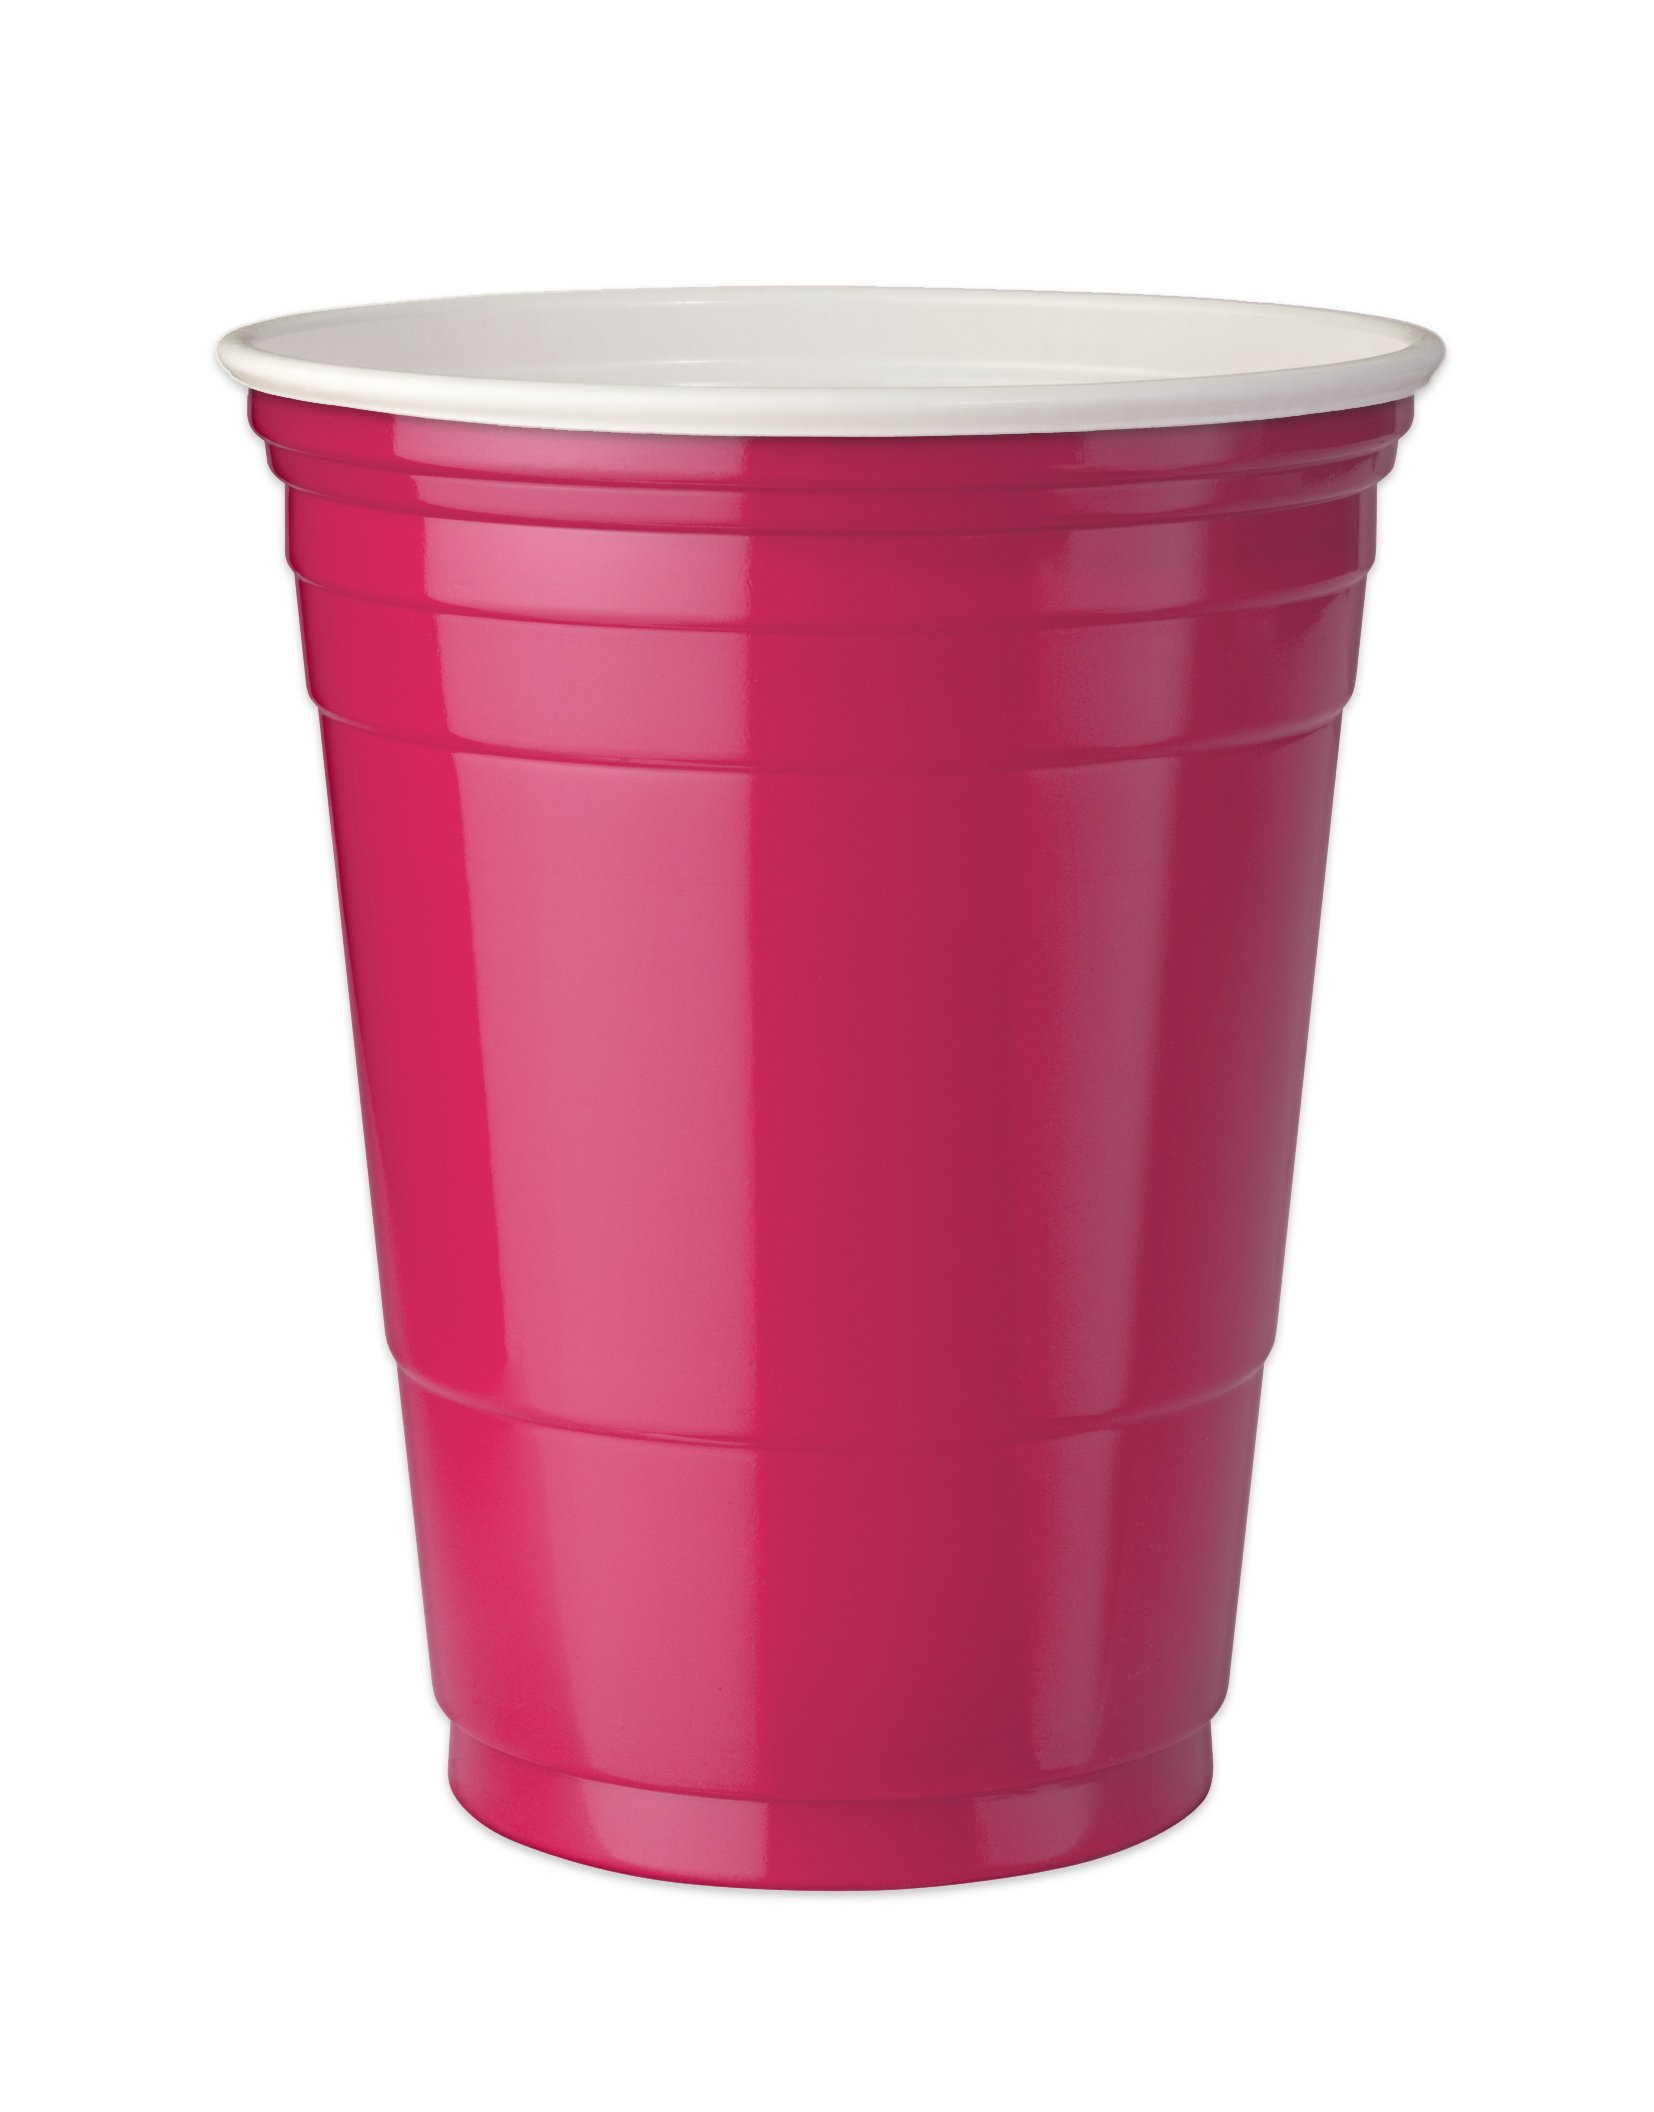 Mr. Ice Bucket Double Walled Insulated Party Cups, 16-Ounce, Azalea,(Pack of 4)